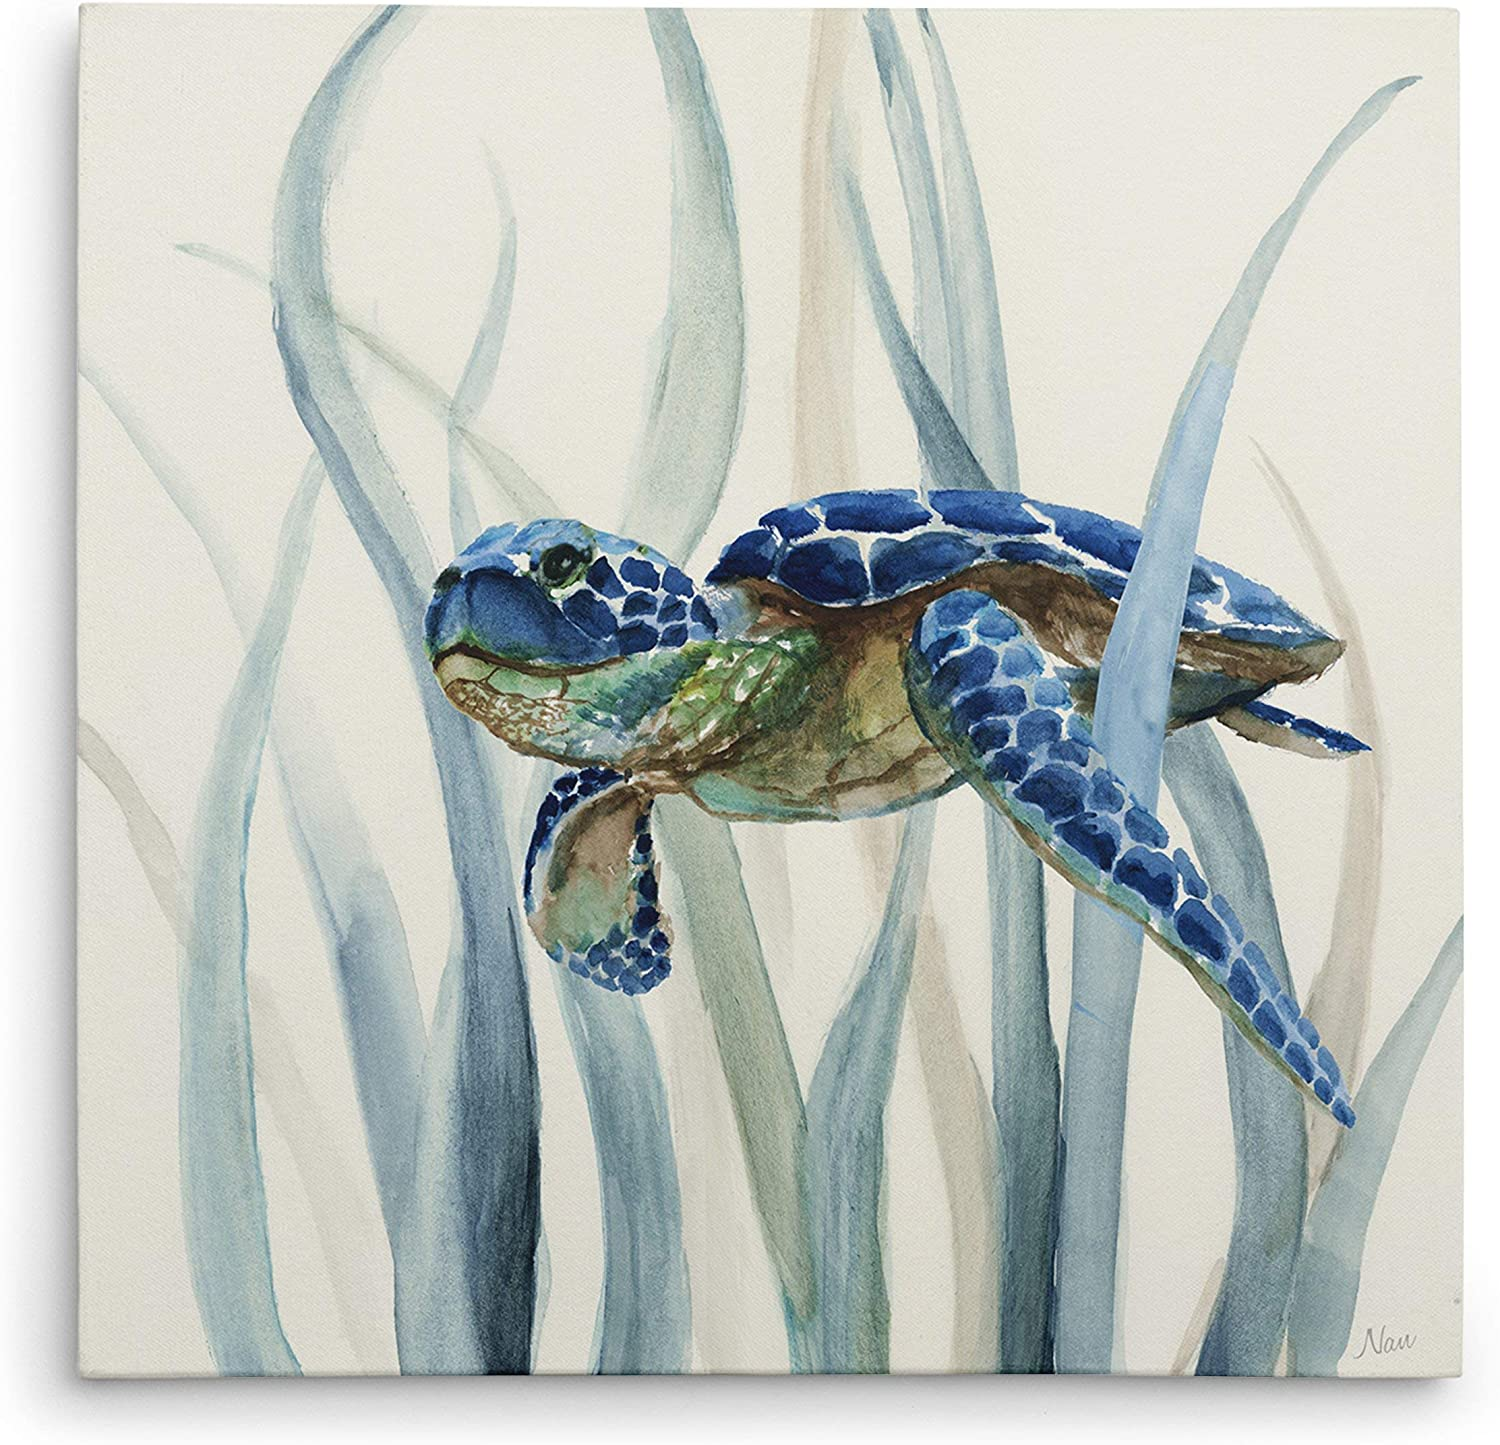 WEXFORD HOME Turtle in Seagrass II Gallery Wrapped Canvas Wall Art, 32x32